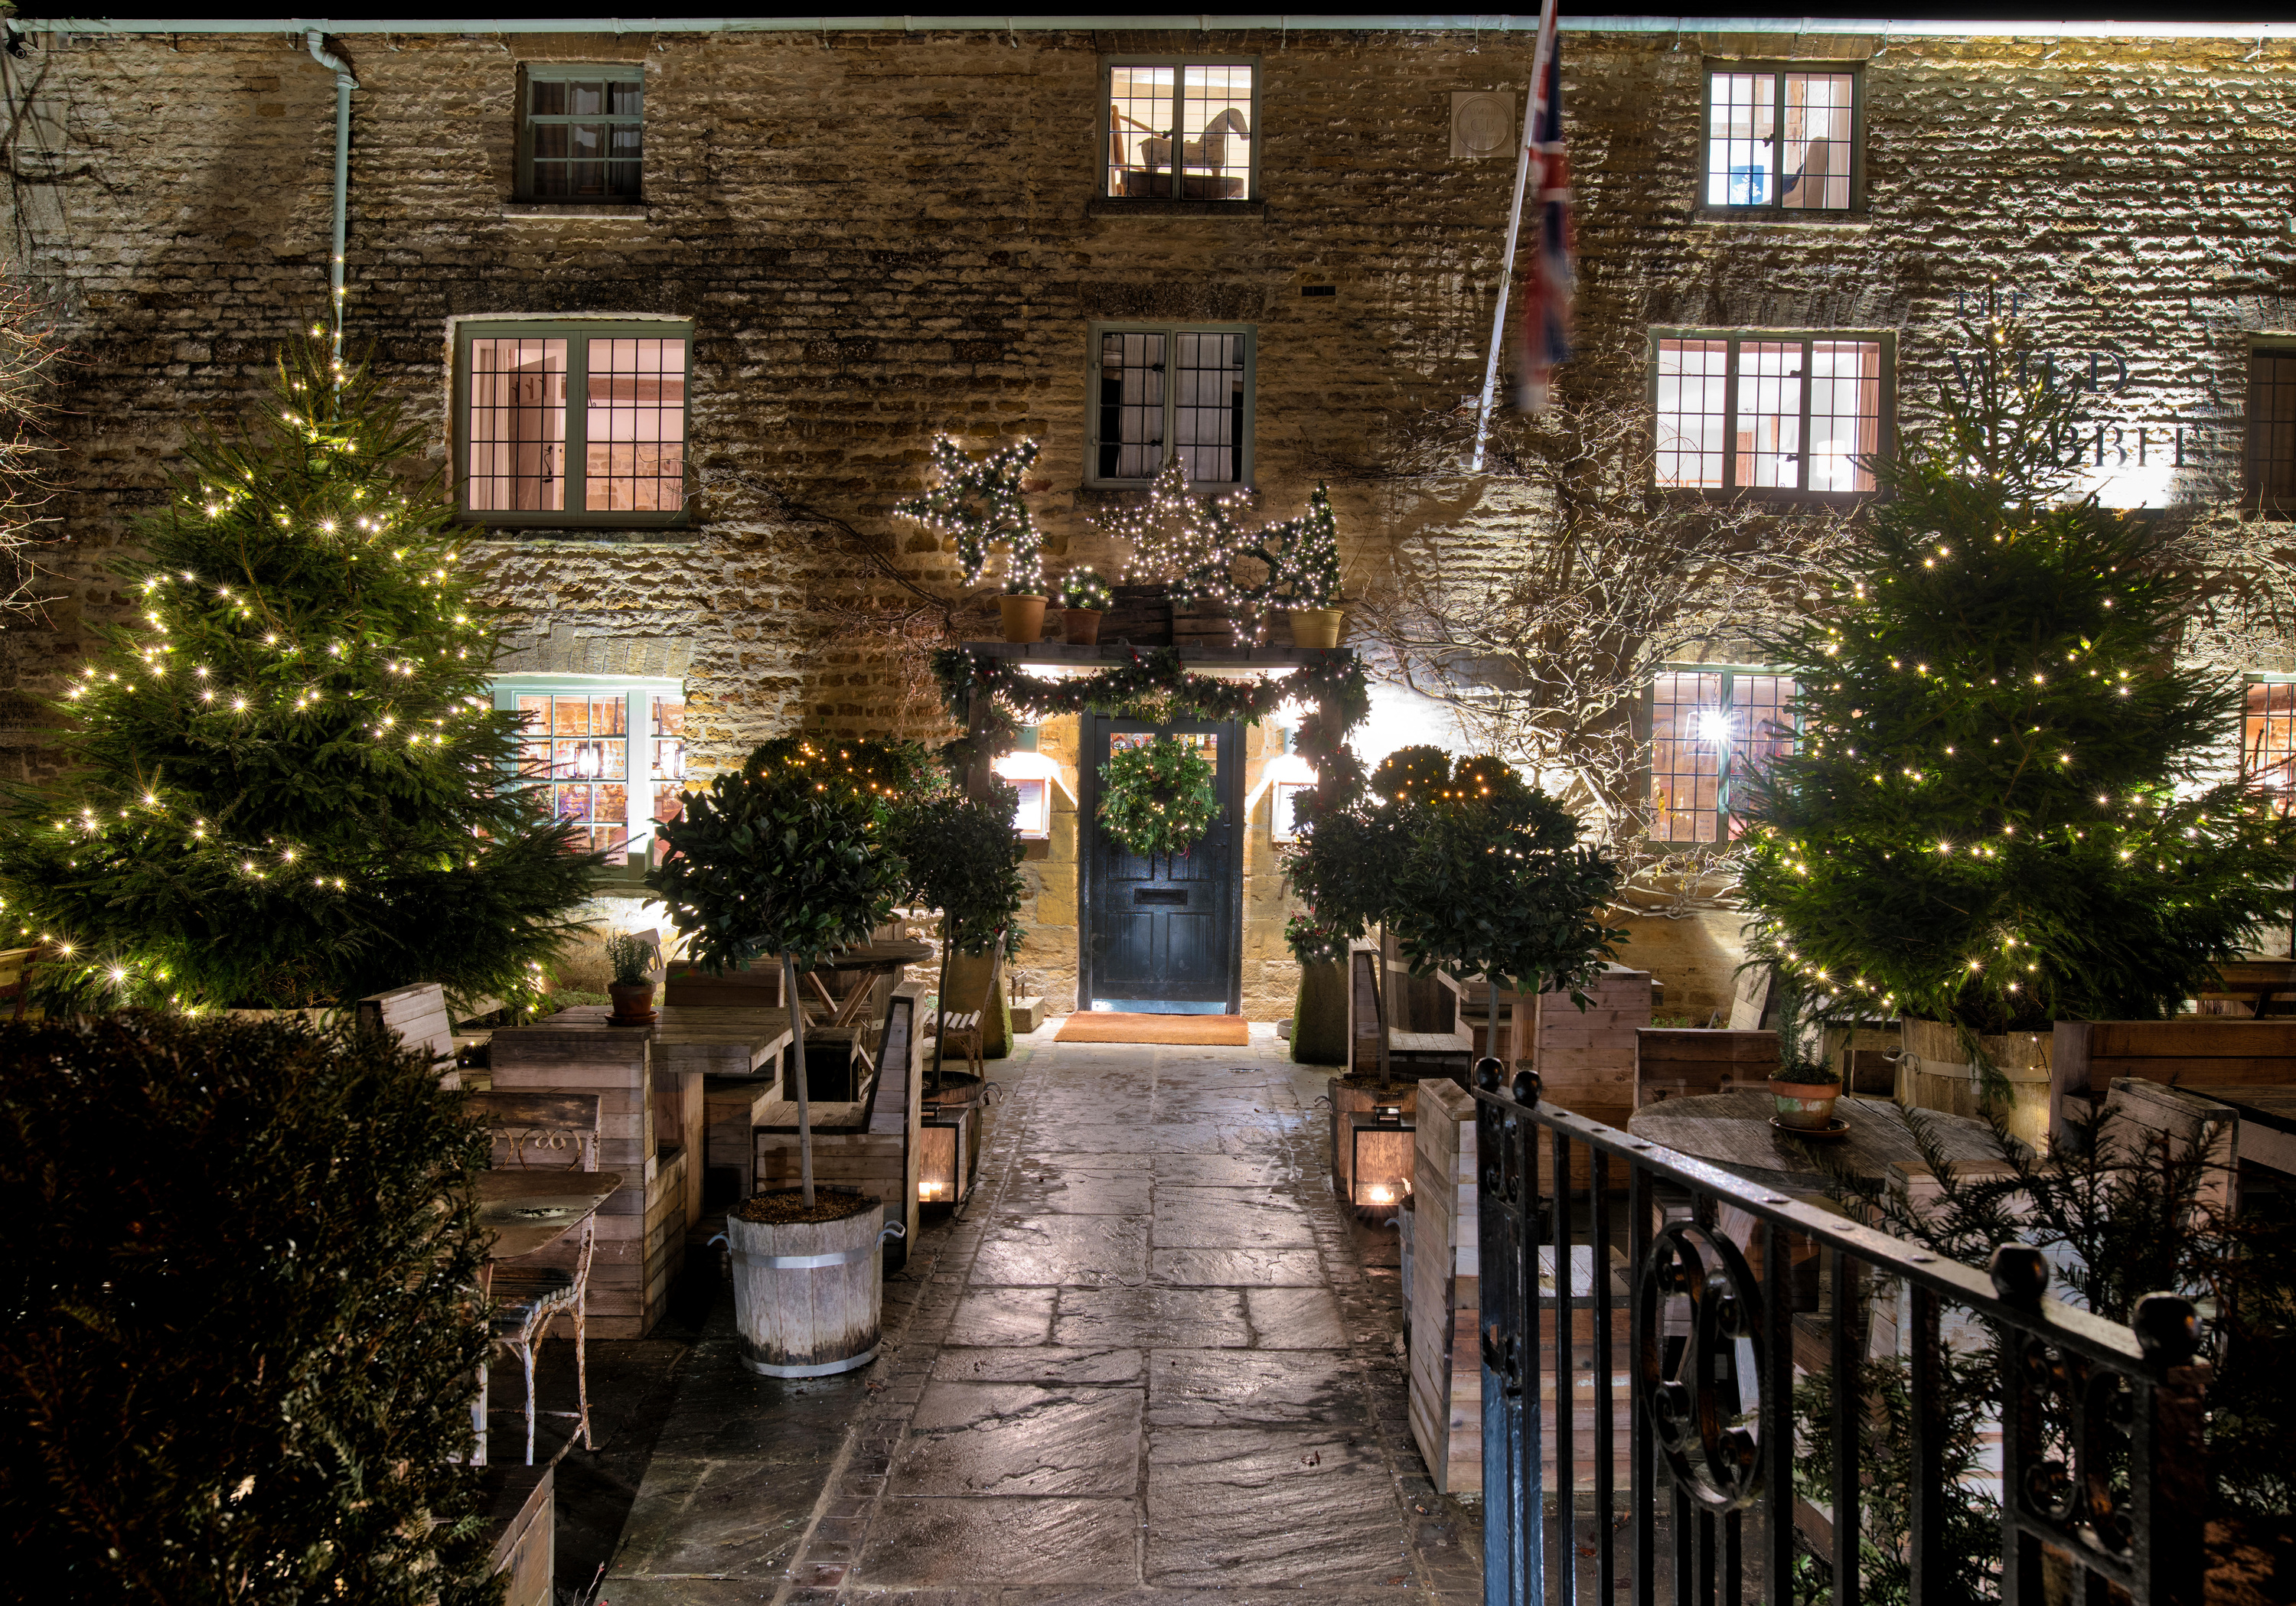 The Wild Rabbit pub with christmas trees and decorations at night in Kingham in December. Kingham, Cotswolds, Oxfordshire, England